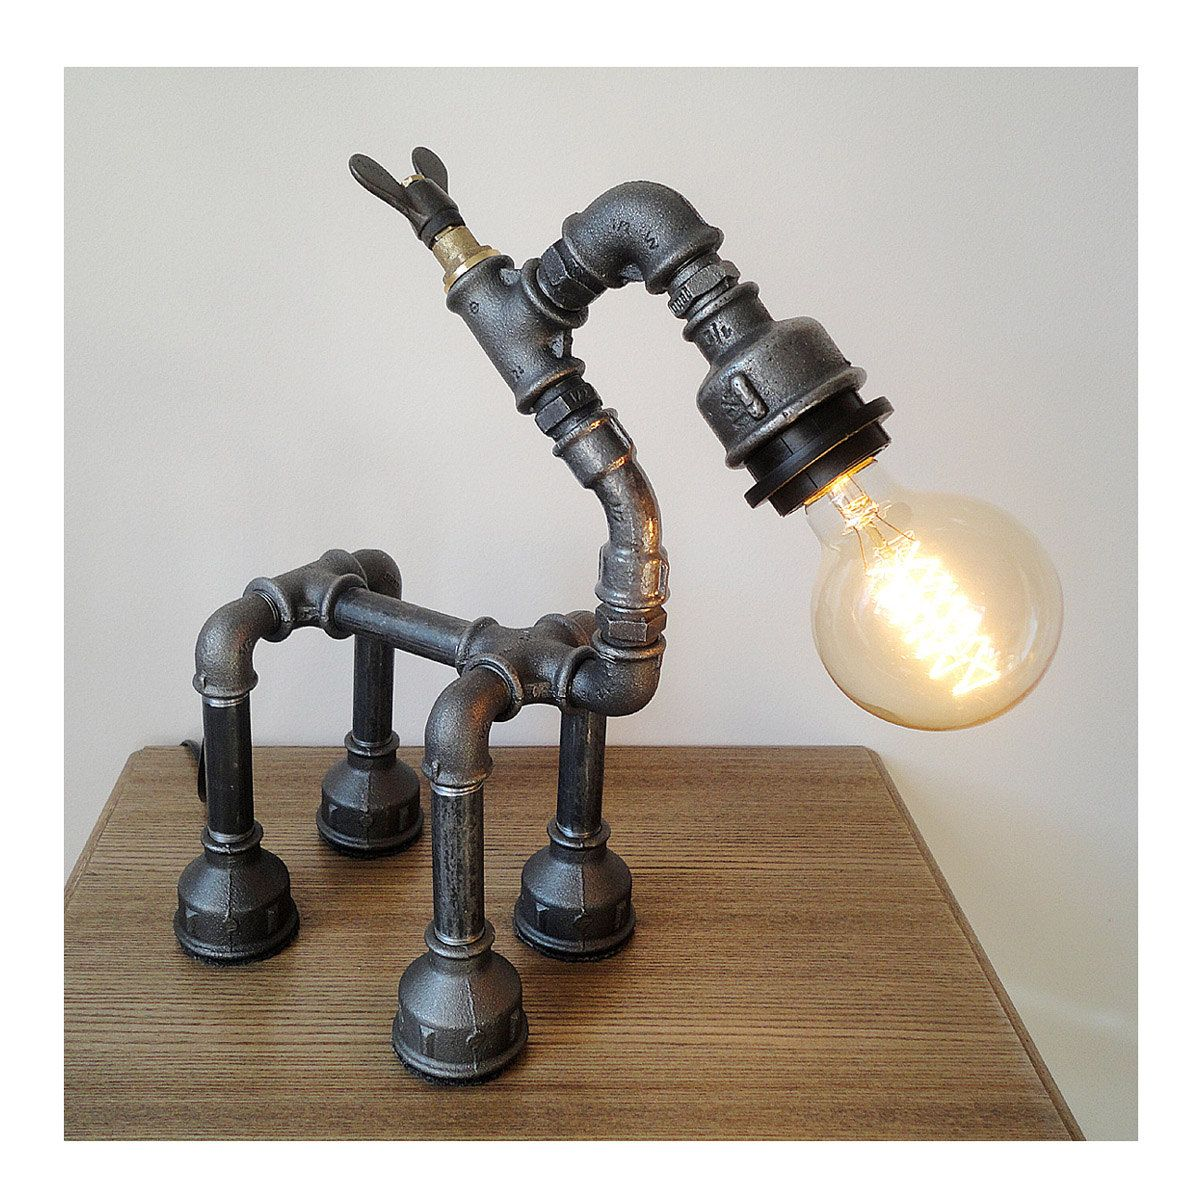 Fumat Table Lamp Black White Puppy Desk Lamps Design Animals Table Light Vintage Art Deco Dogs Table Lamps For Livingroom Easy To Lubricate Led Lamps